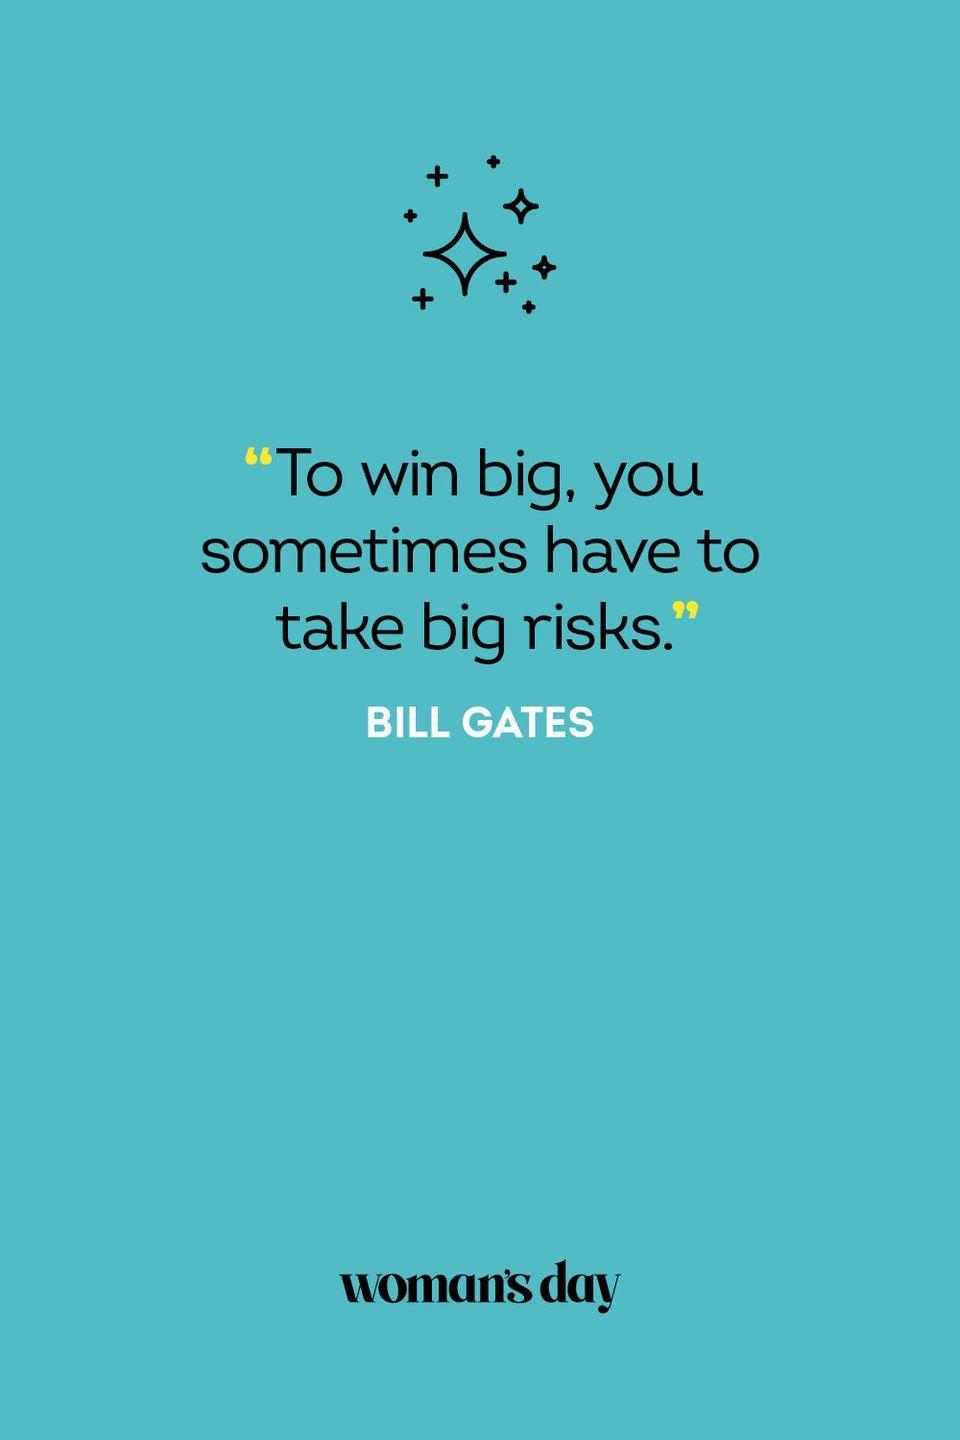 <p>To win big, you sometimes have to take big risks.</p>